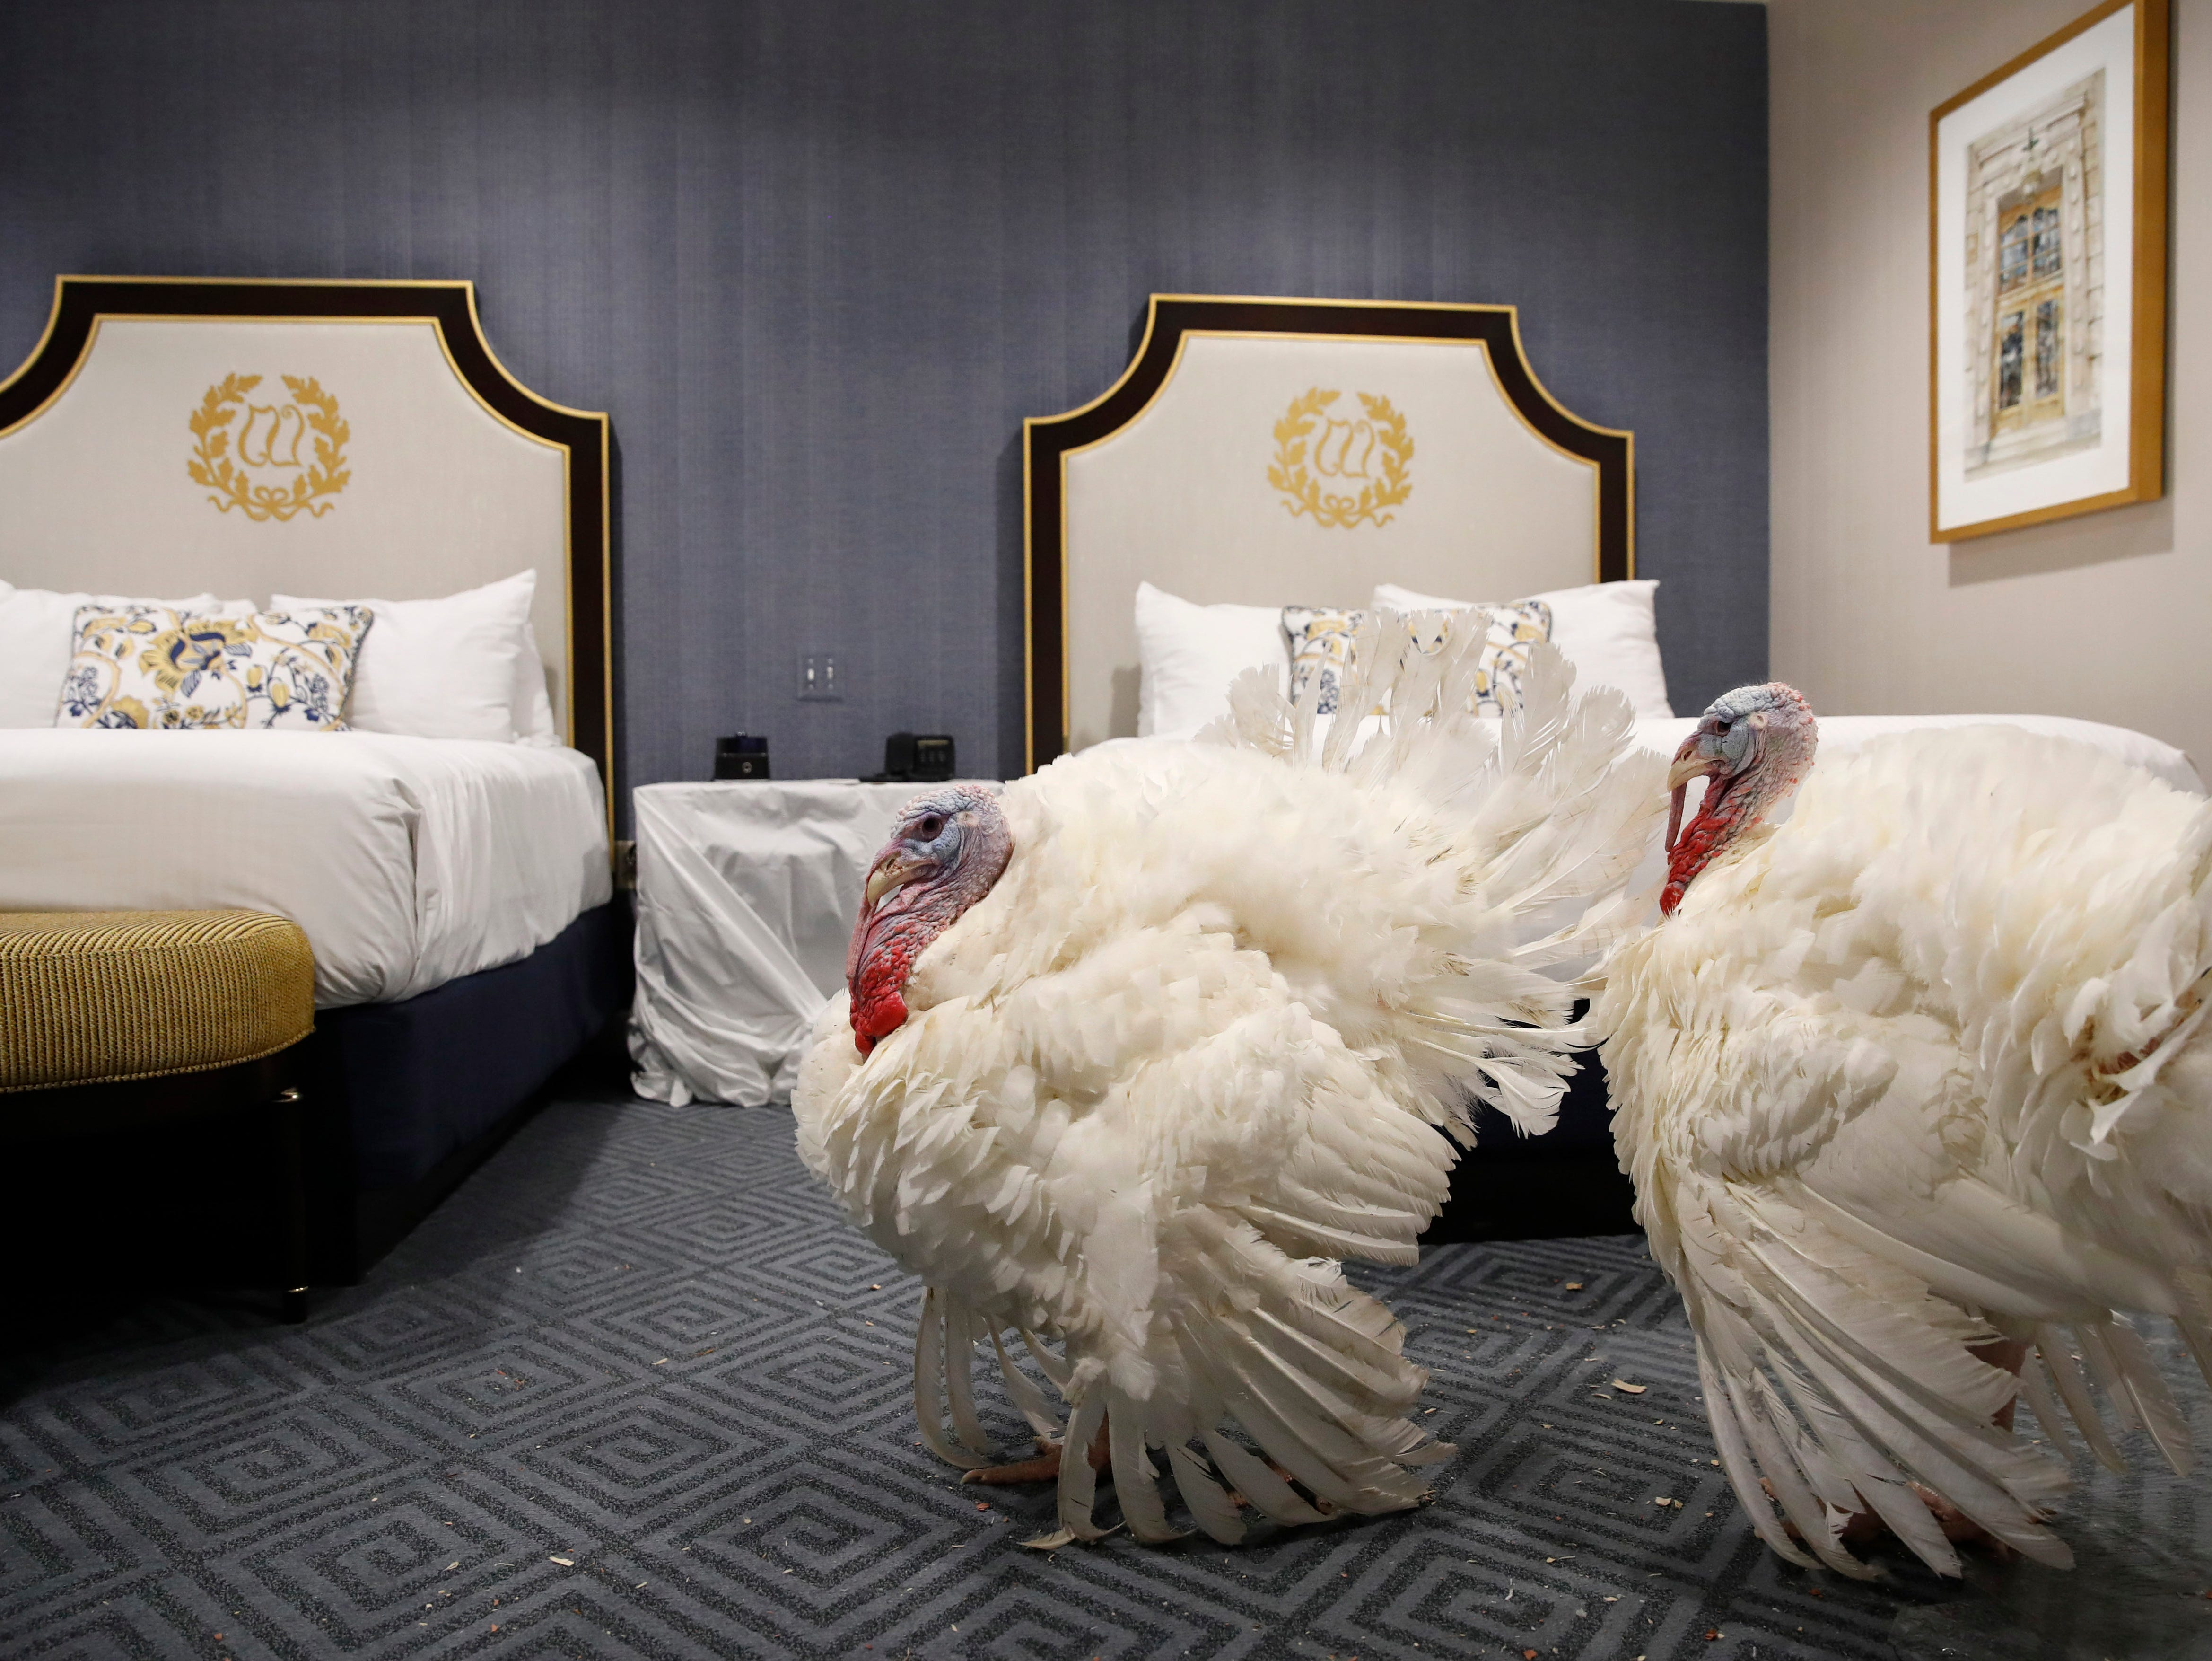 Two turkeys from South Dakota get comfortable in their room at the Willard InterContinental Hotel, after their arrival Saturday Nov. 18, 2018, in Washington. The turkeys will be named pardoned by President Donald Trump during a ceremony at the White House ahead of Thanksgiving. (AP Photo/Jacquelyn Martin)